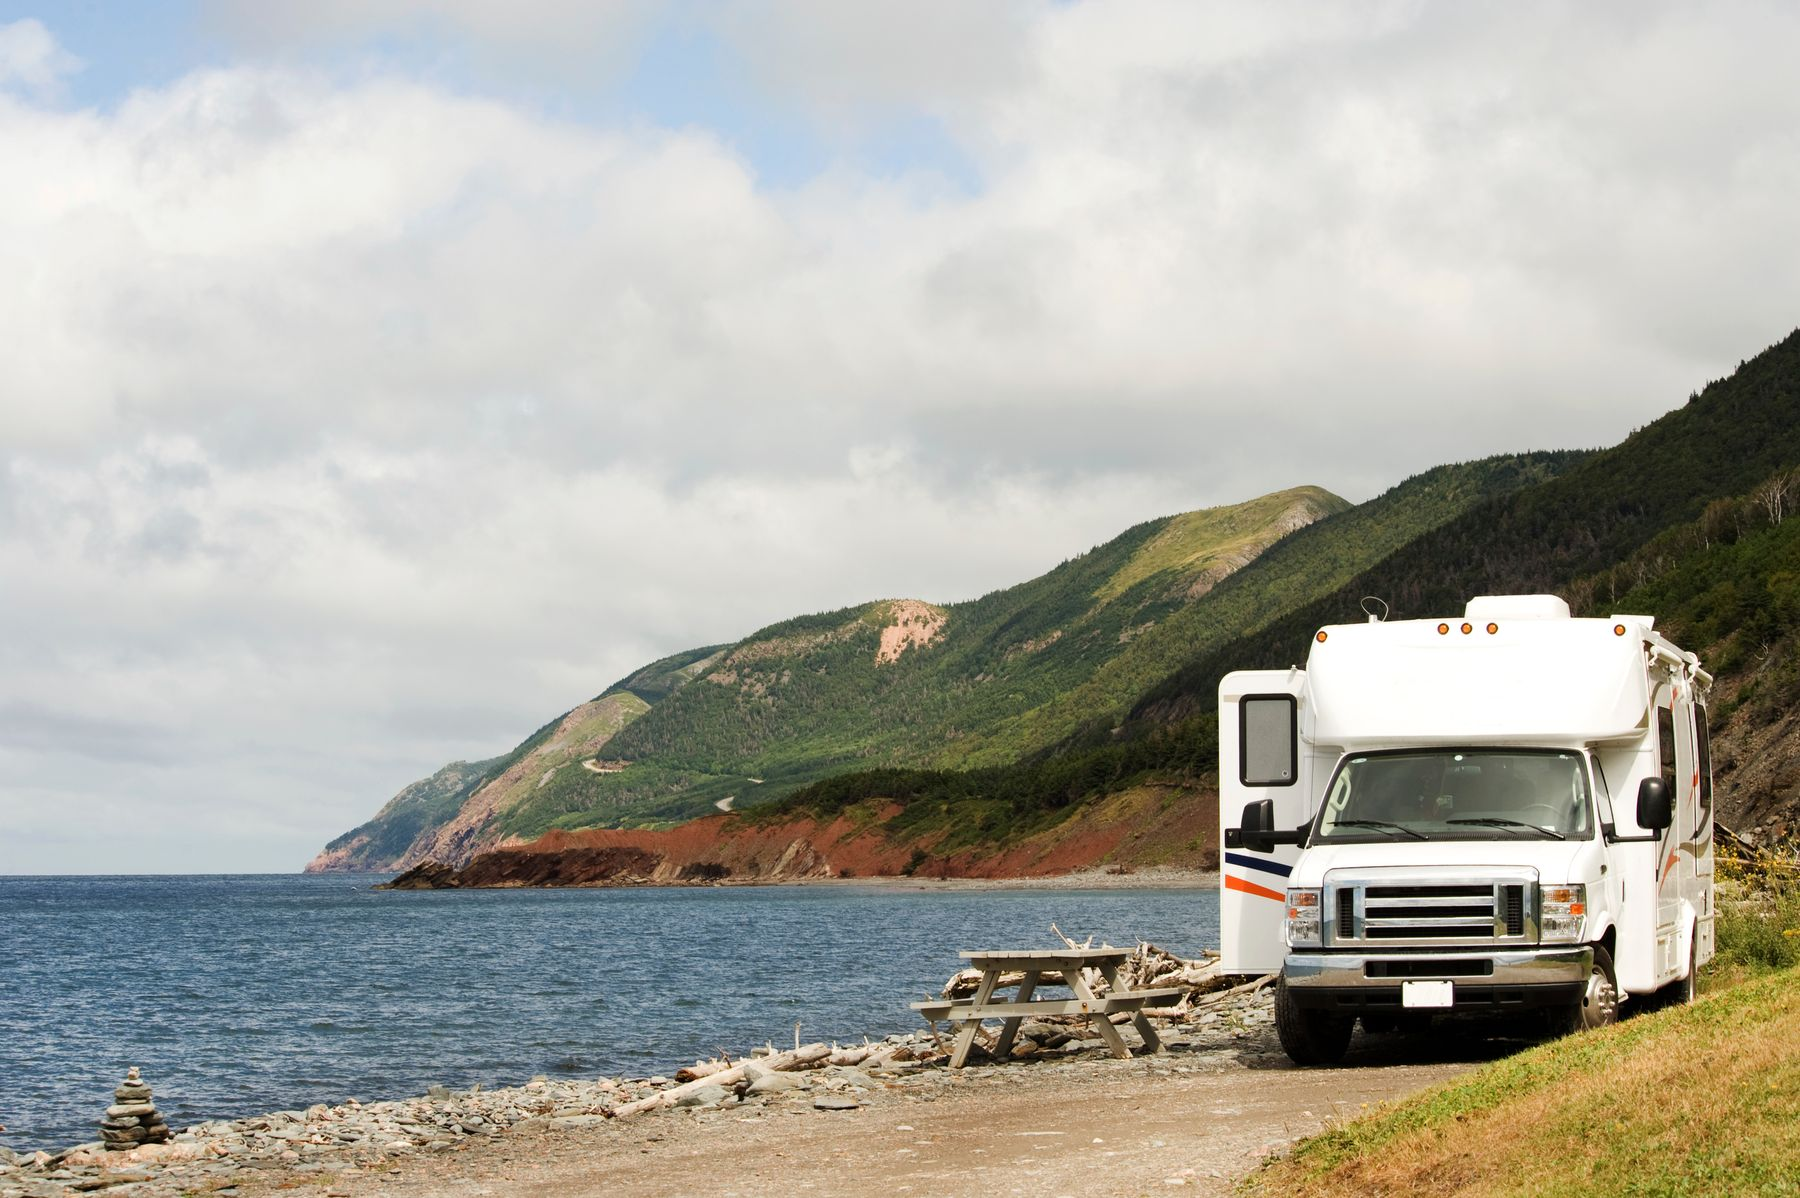 camper van parked at a rest stop along the shores of Cape Breton Highlands National Park, an underrated national park of Canada